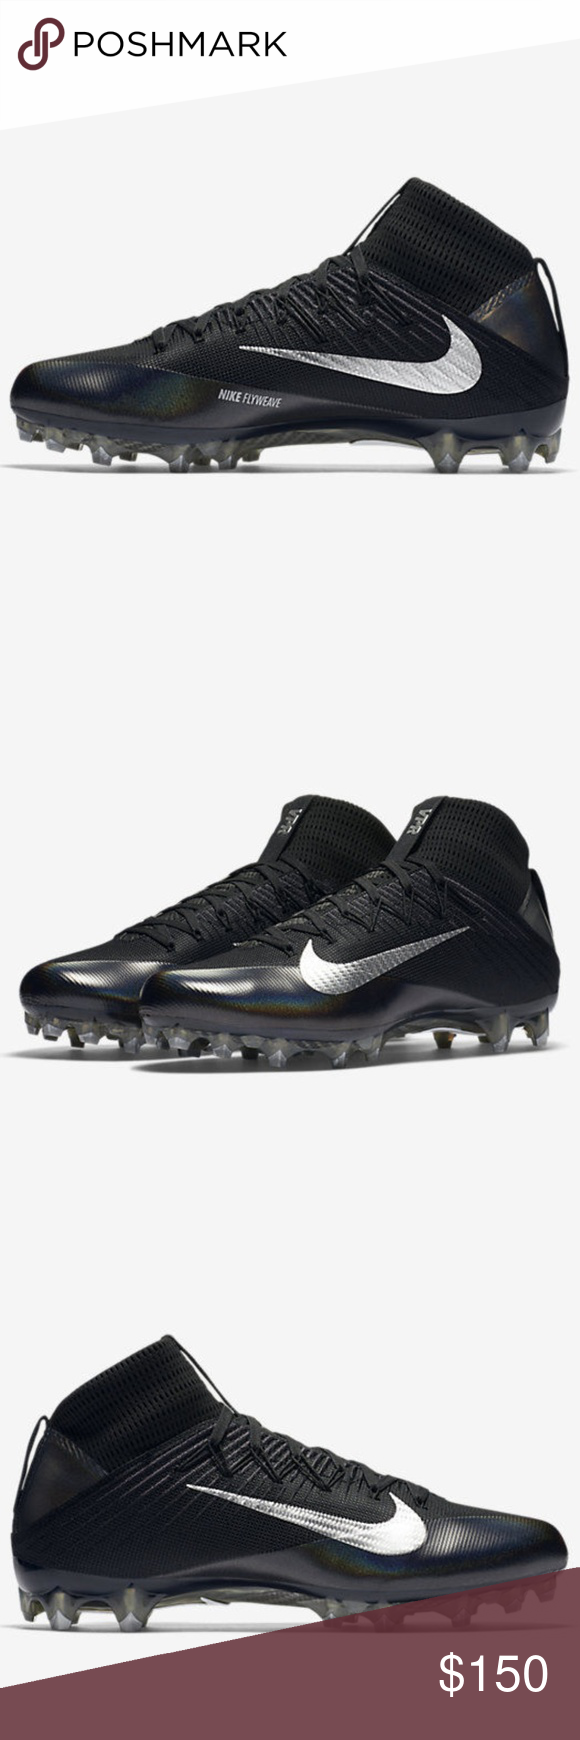 4028dd04bf0d Nike Vapor Untouchable 2 Carbon Football Cleats Nike Vapor Untouchable 2  Carbon Football Cleats Black 824470-002 Men's Size 15 Brand New, Ships  without ...